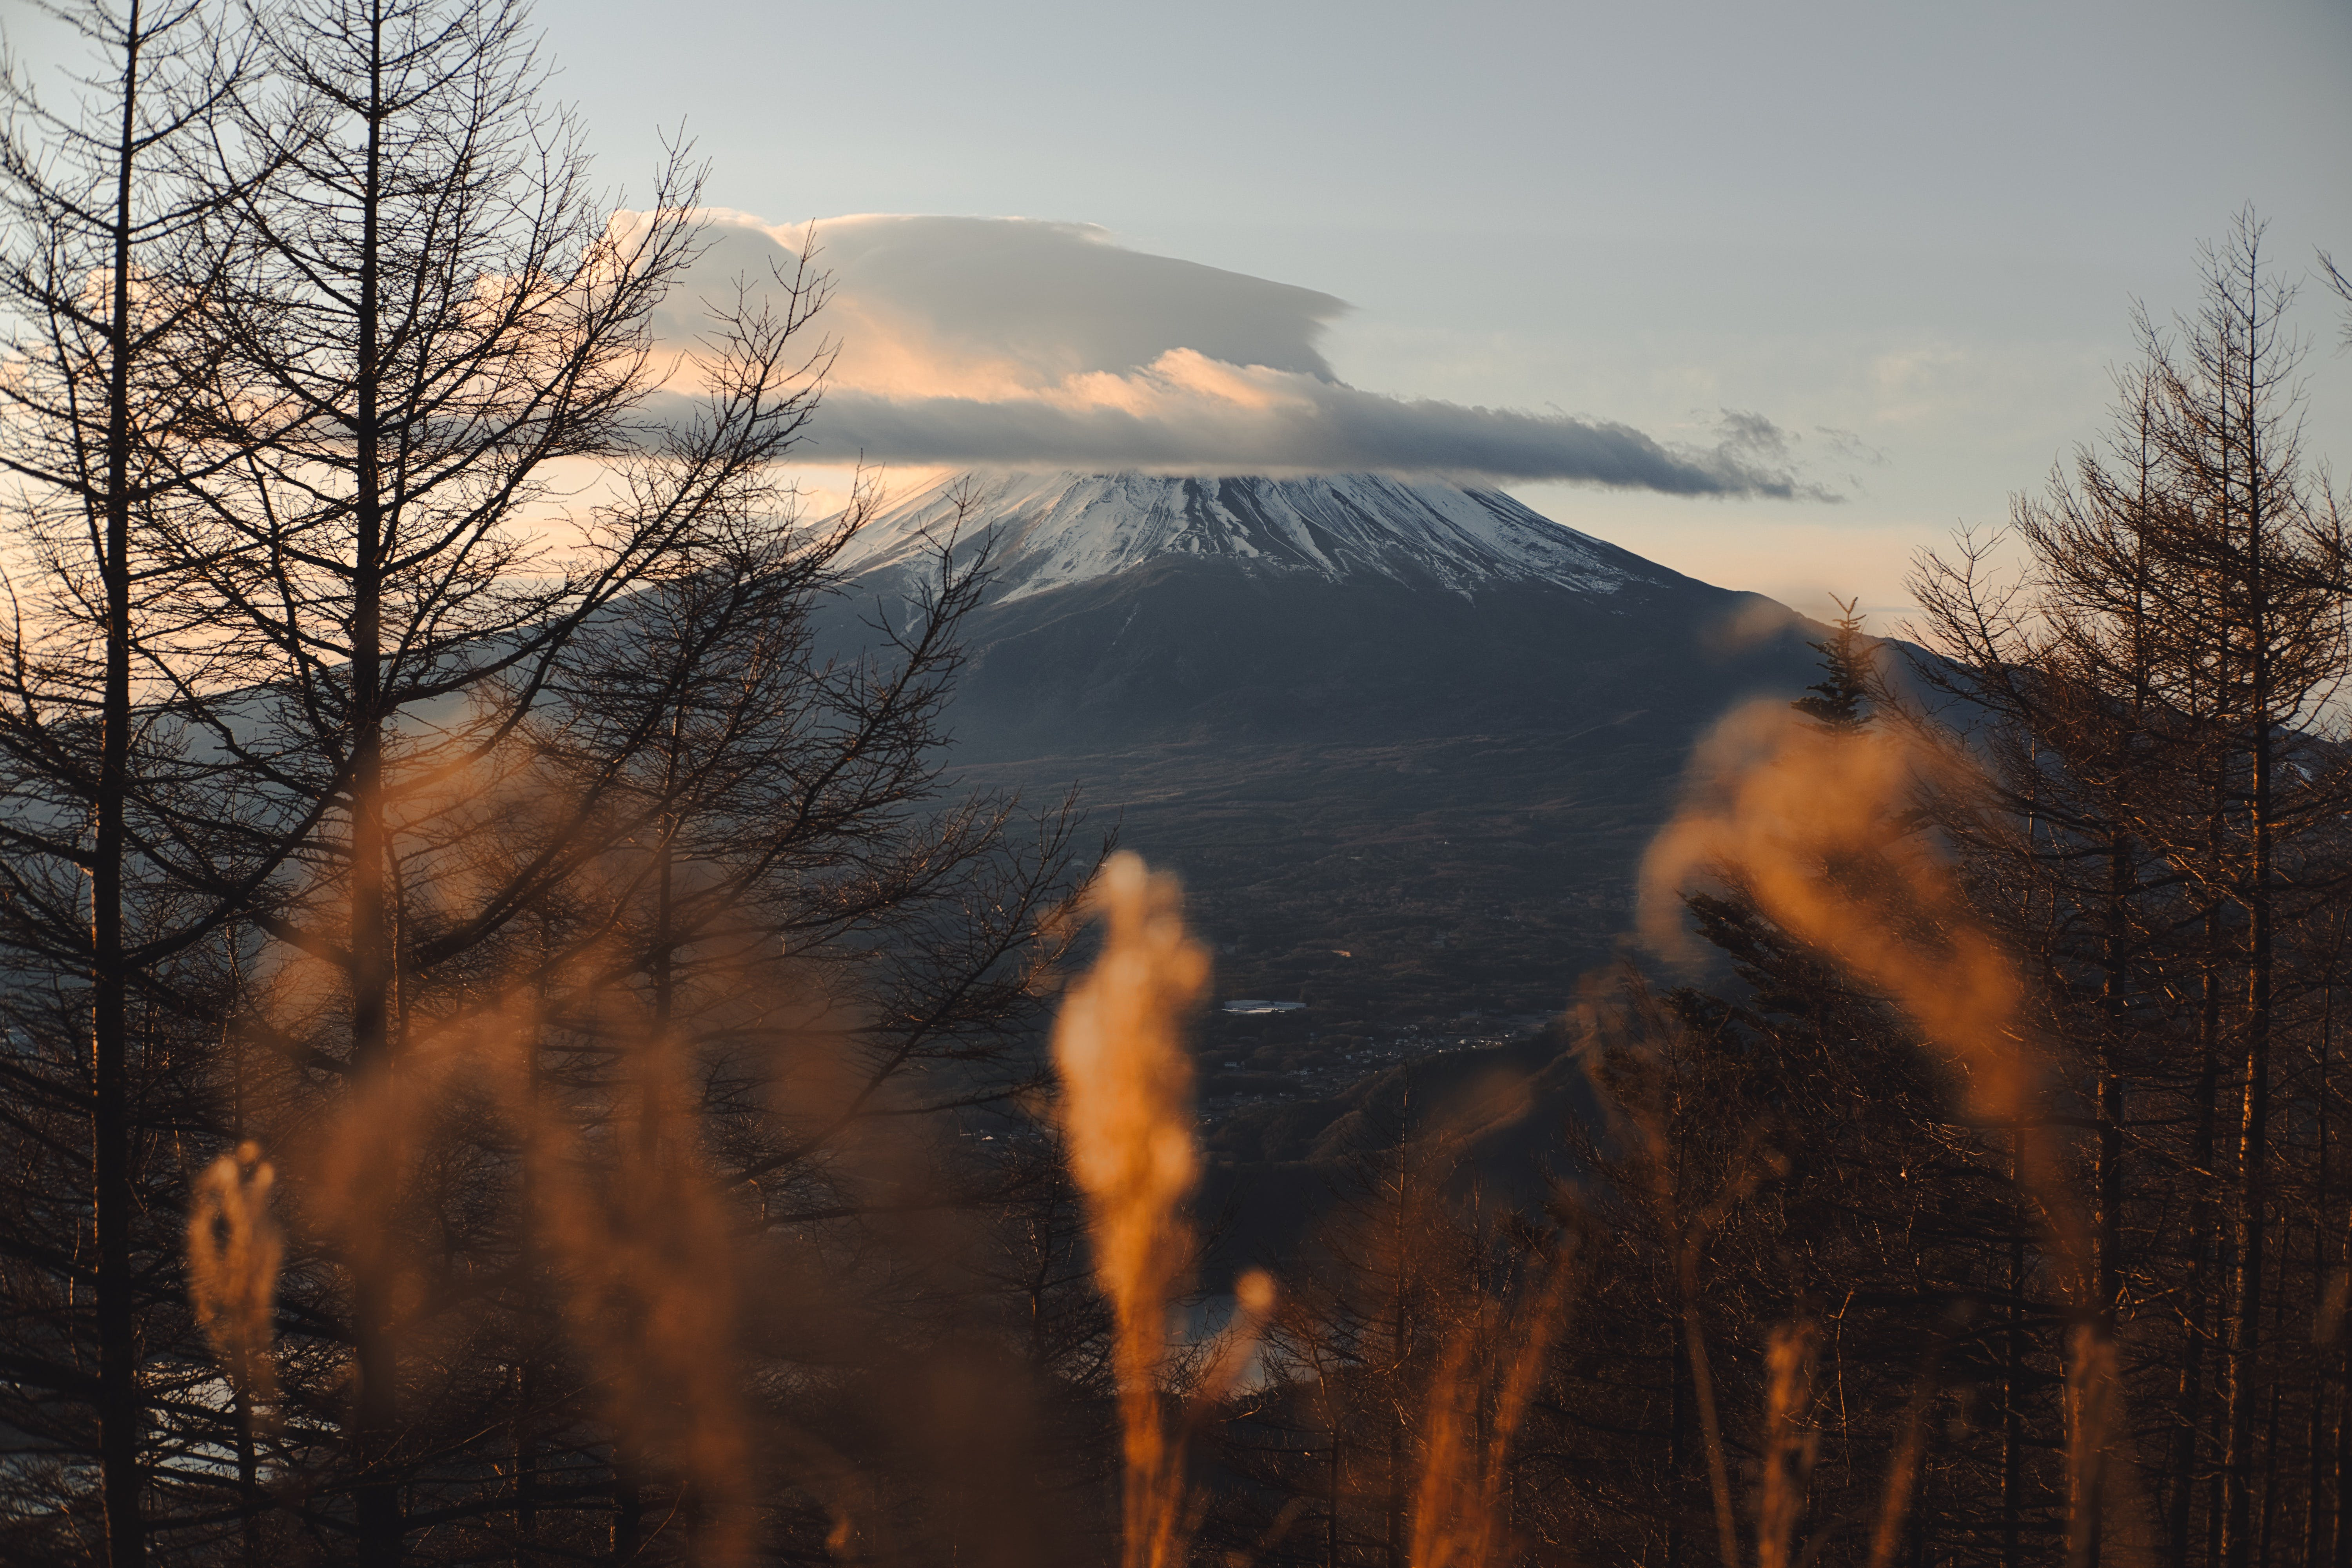 Landscape of Mount Fuji